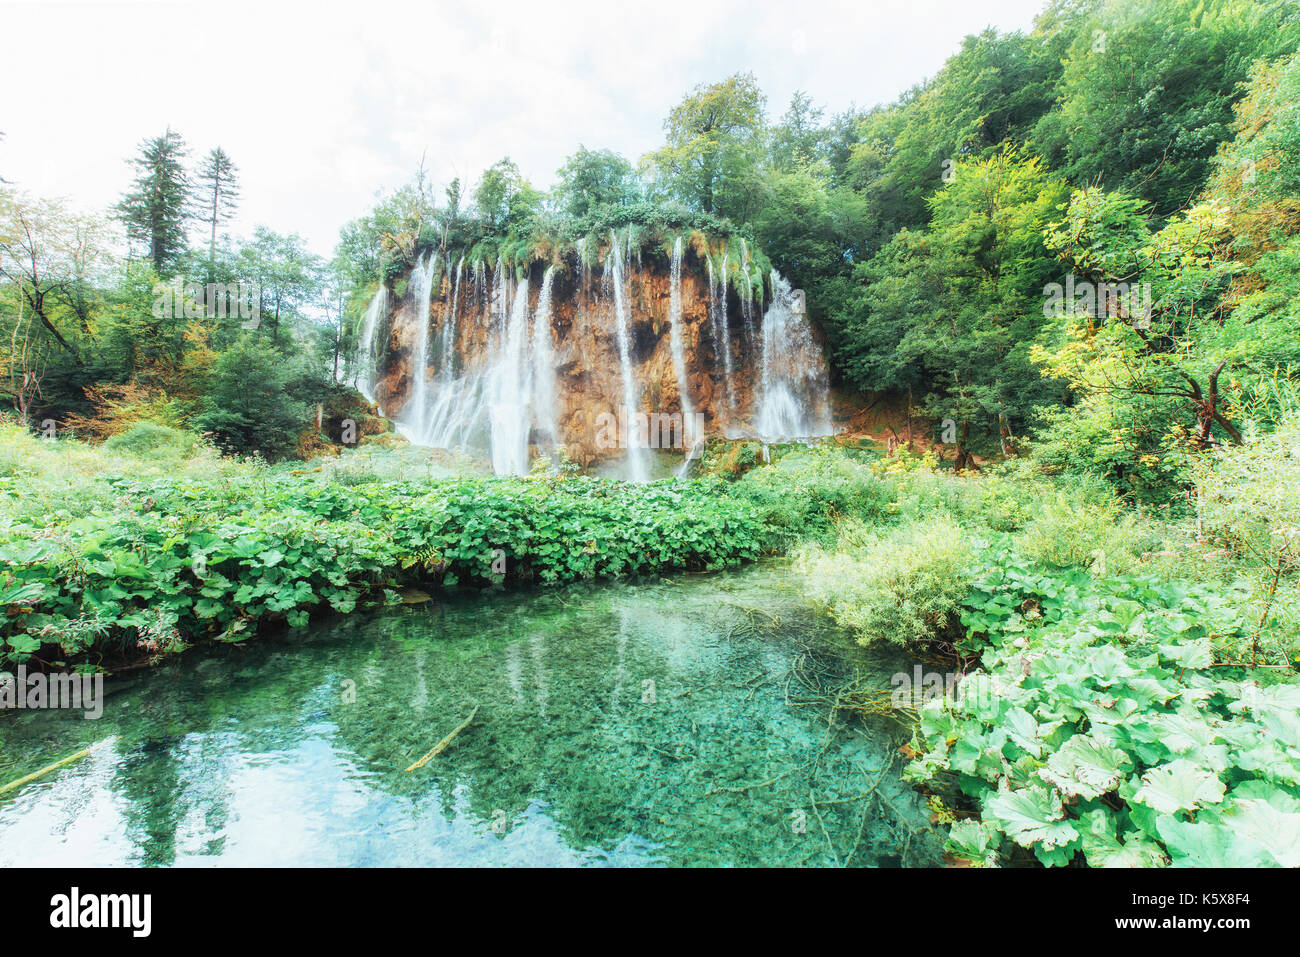 Une photo de poissons nageant dans un lac, prises dans le parc national de Plitvice croatie. Photo Stock